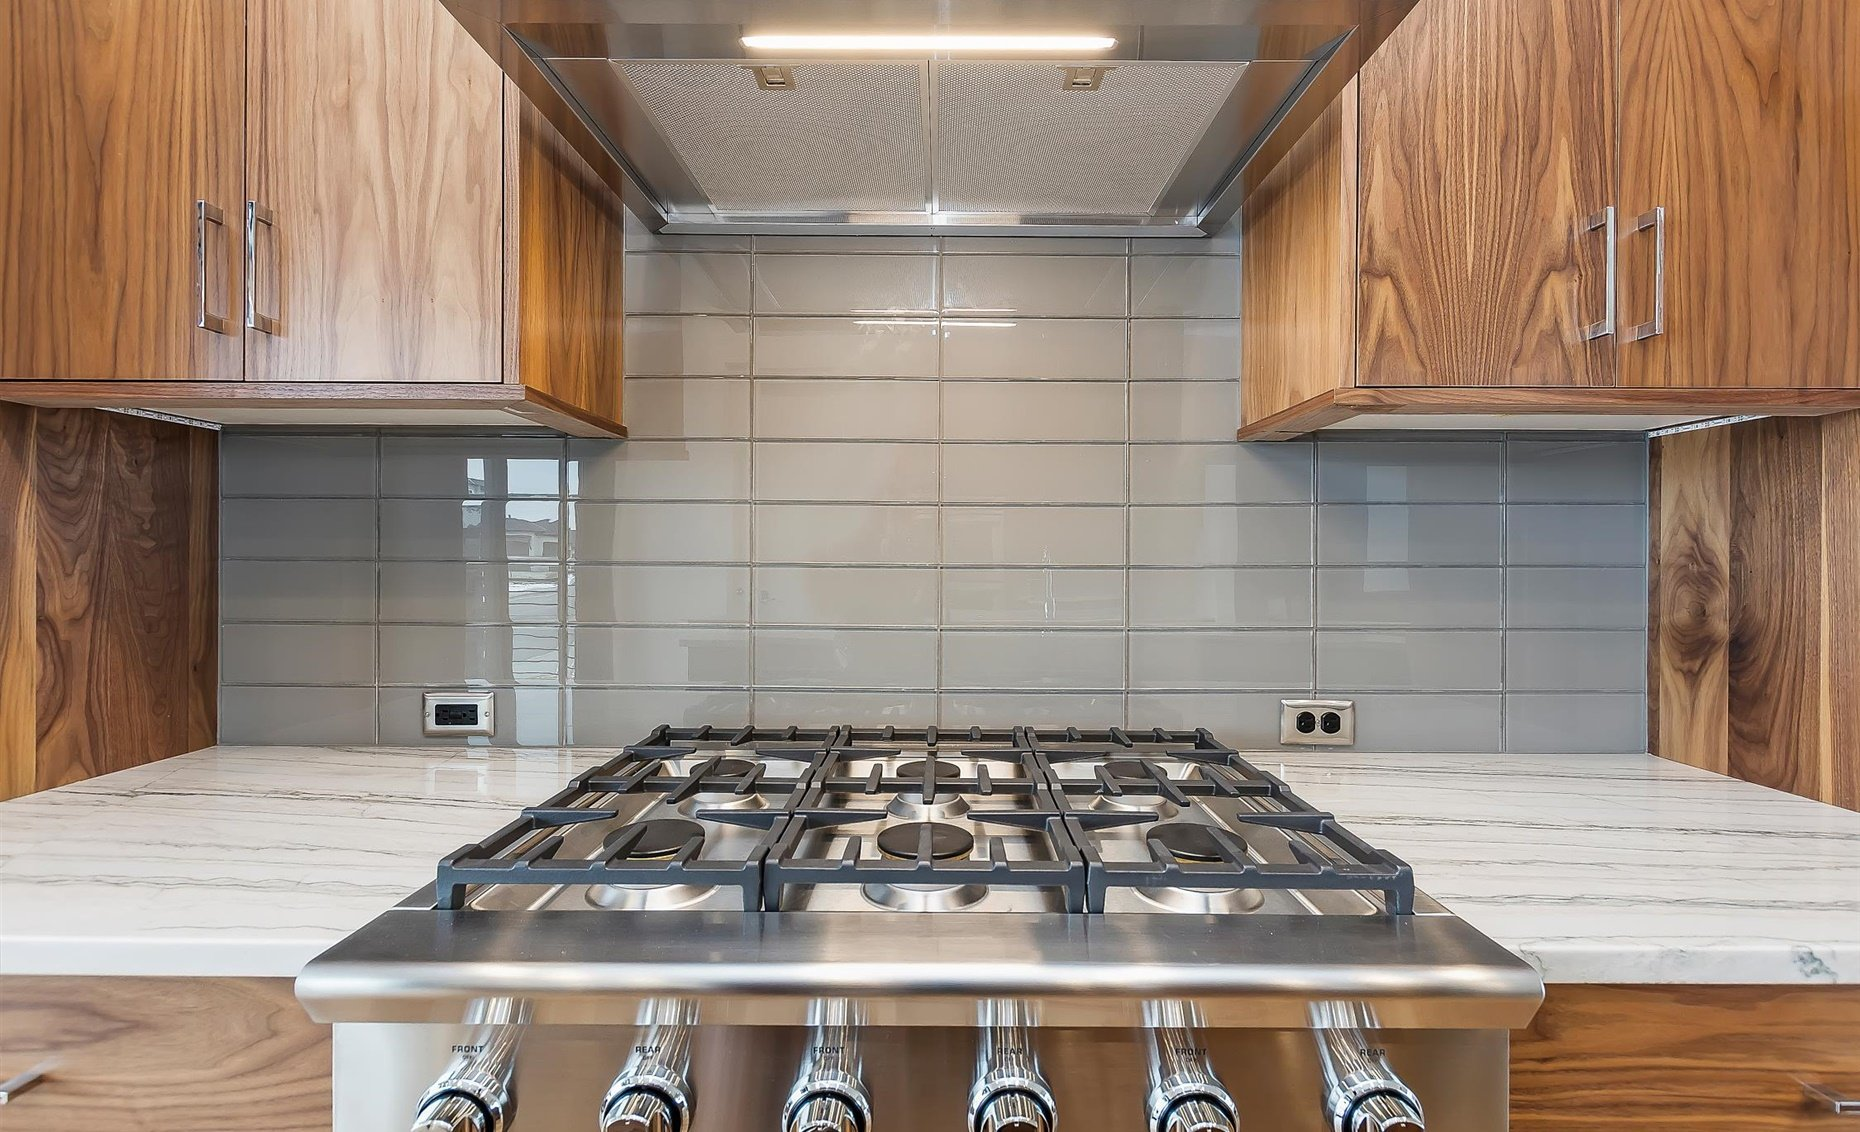 East Highland | Kitchen cabinetry, stove, and fixtures